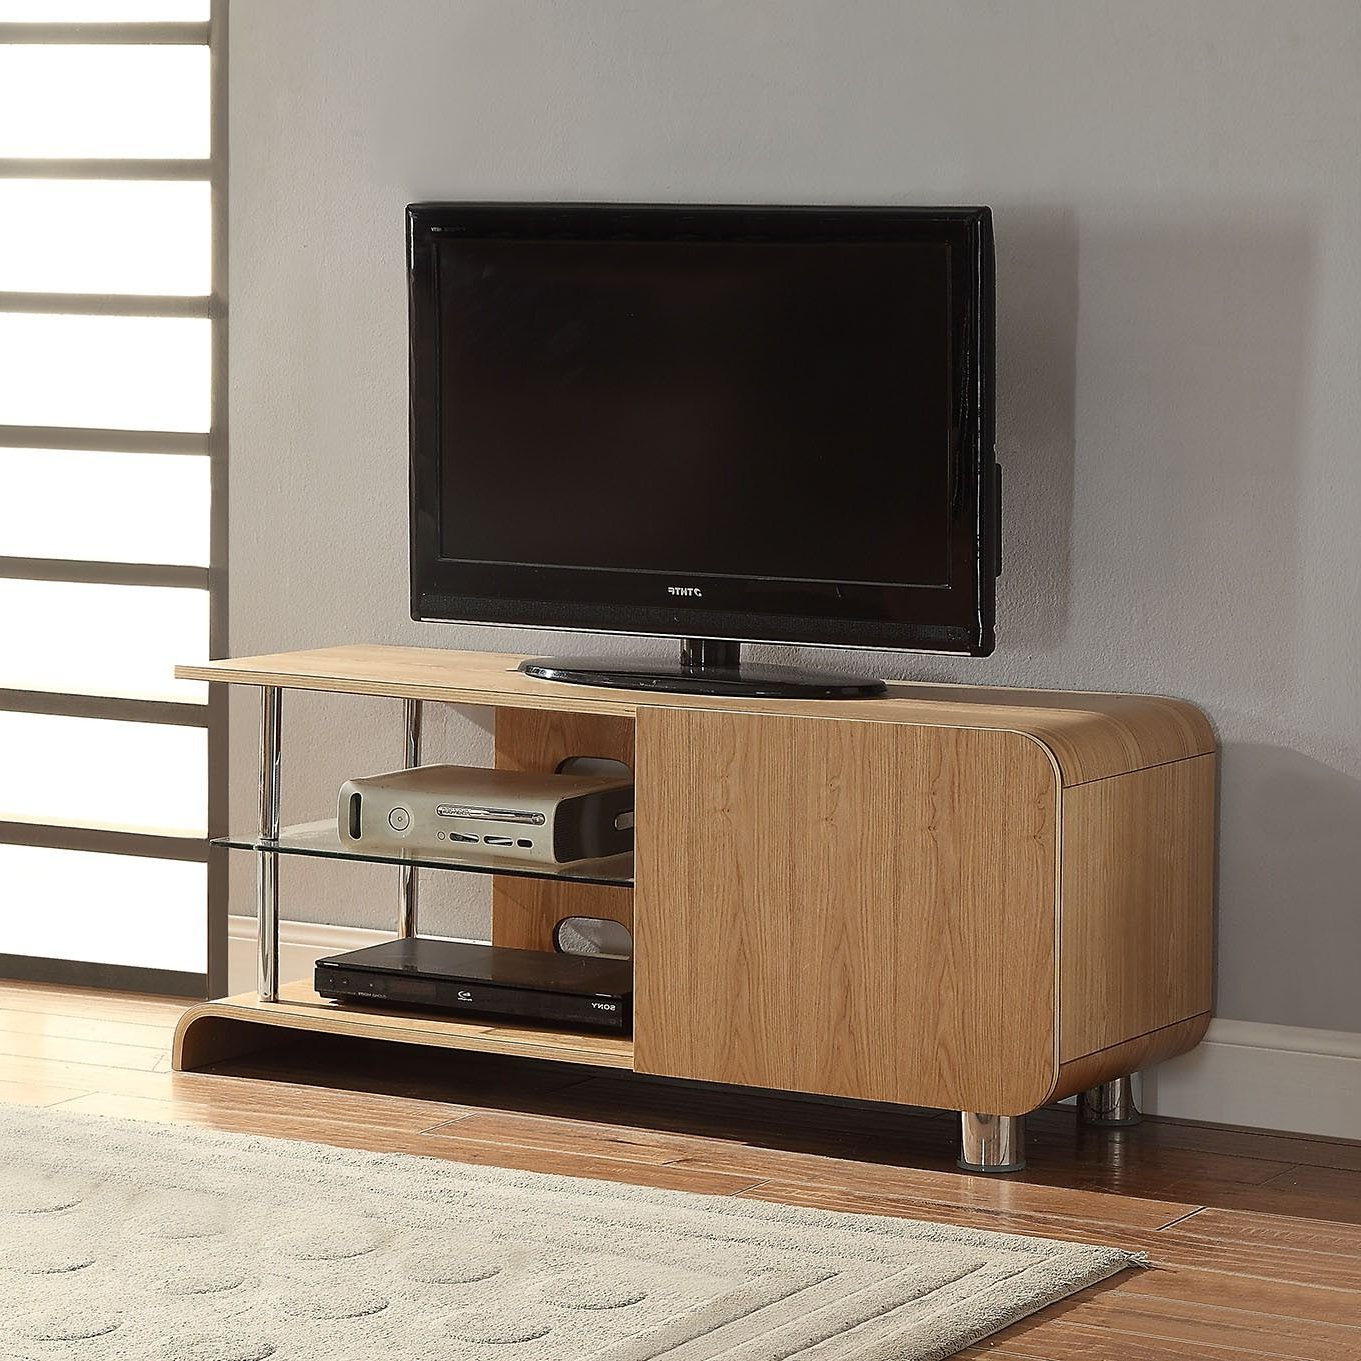 """Most Popular Jual Furnishings Bs202 Ash Tv Stand For Up To 55"""" Tvs With Baba Tv Stands For Tvs Up To 55"""" (View 2 of 25)"""